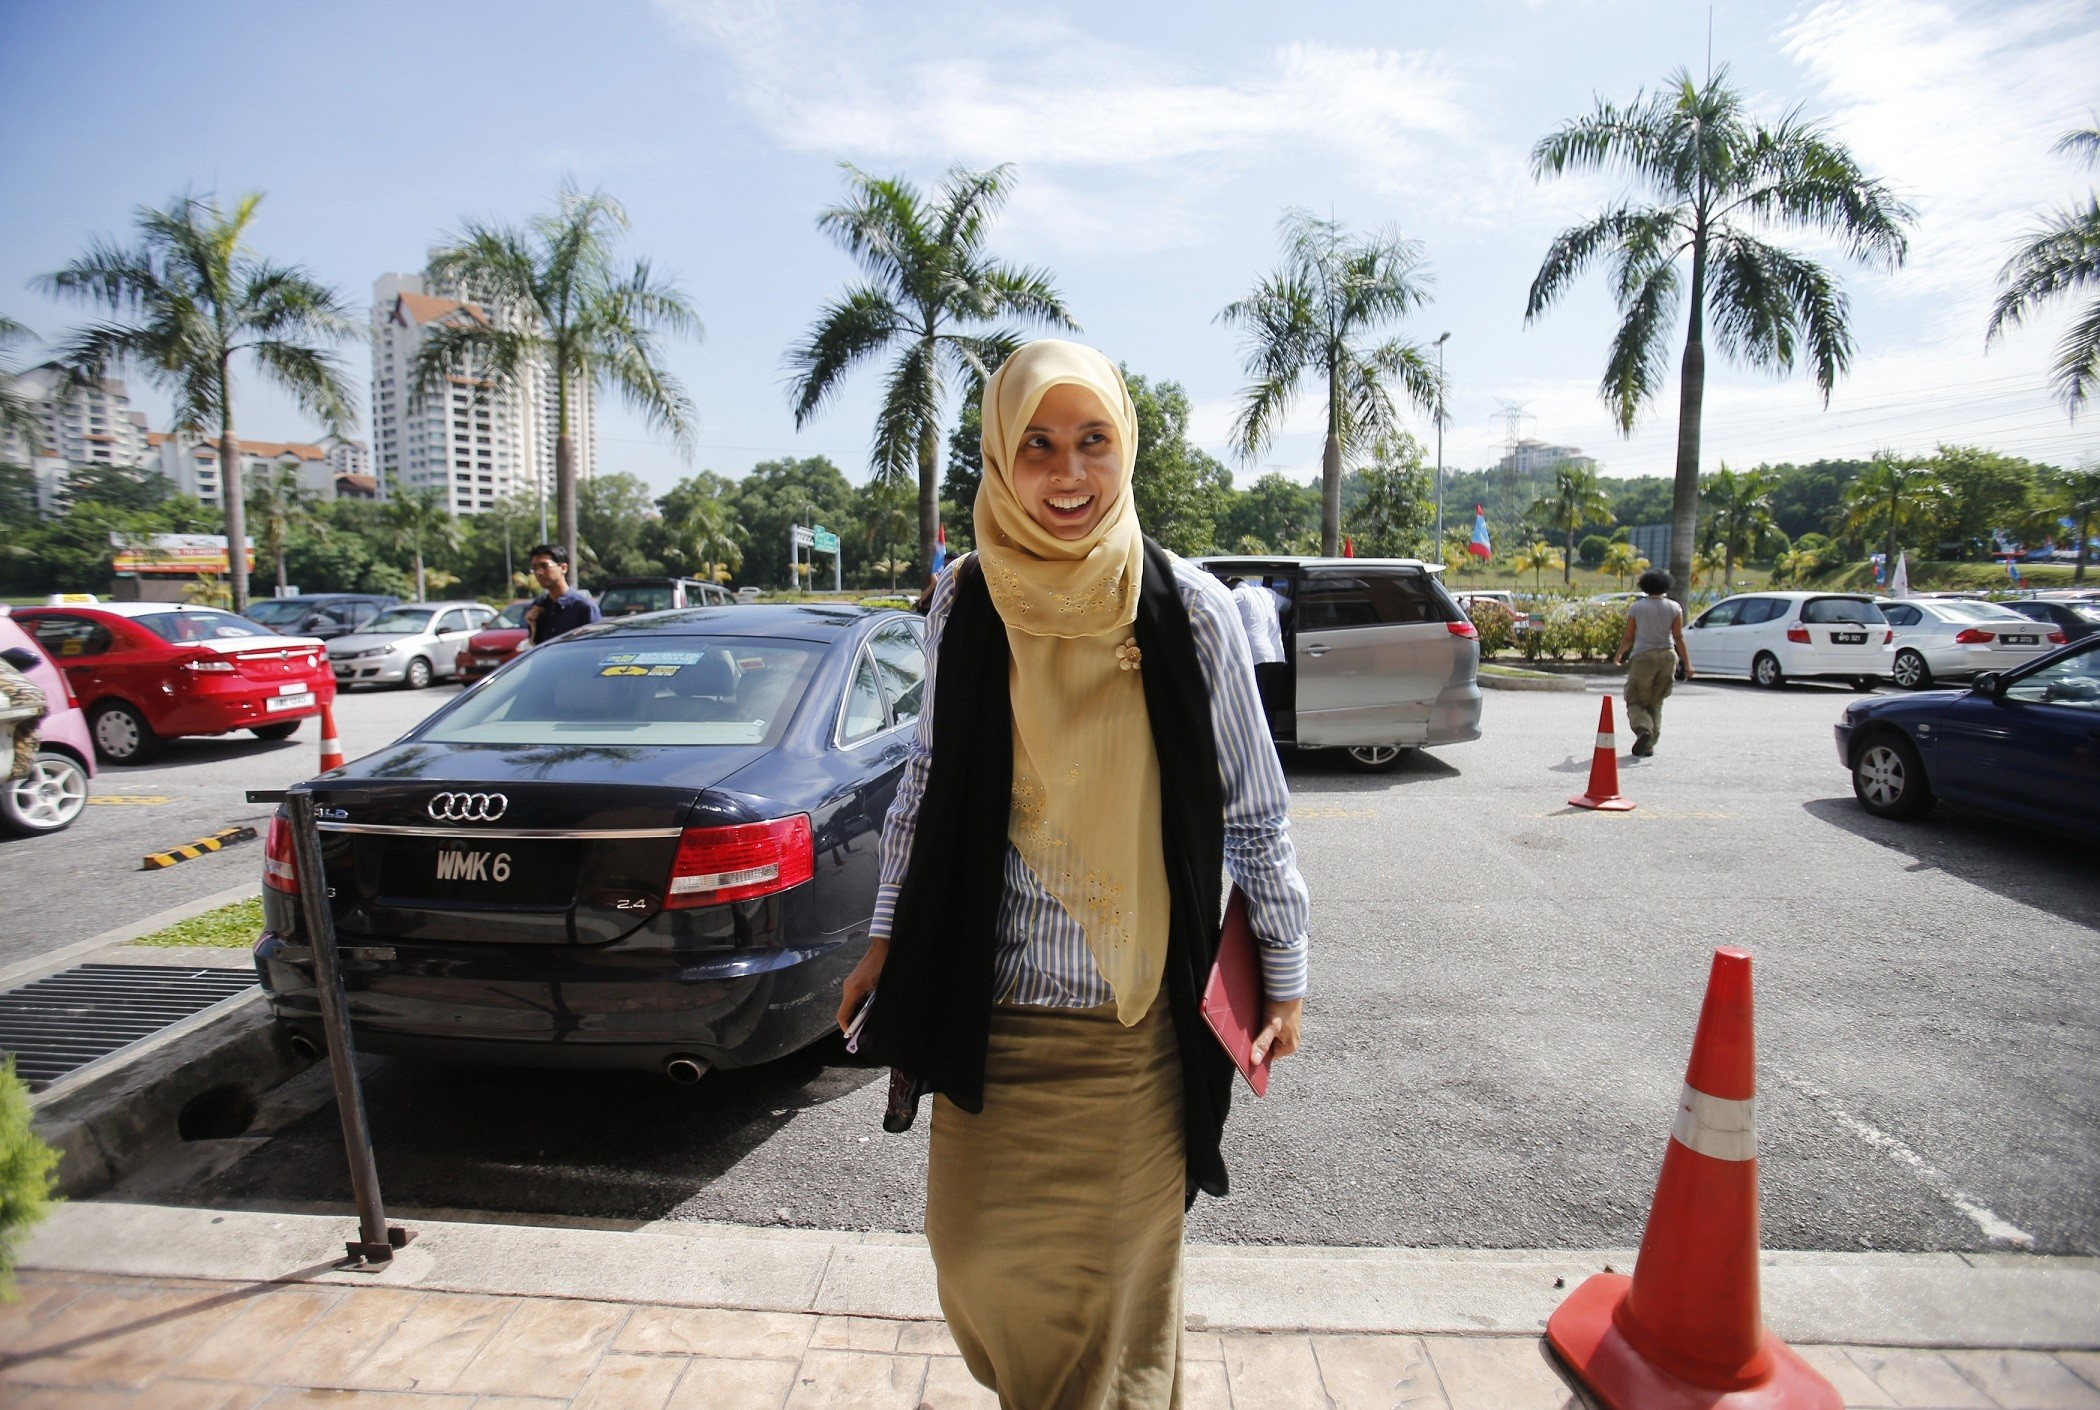 Nurul Izzah Anwar, a daughter of opposition leader Anwar Ibrahim, arrives at their party headquarters in Petaling Jaya outside Kuala Lumpur May 7, 2013. Anwar vowed on Tuesday to lead a